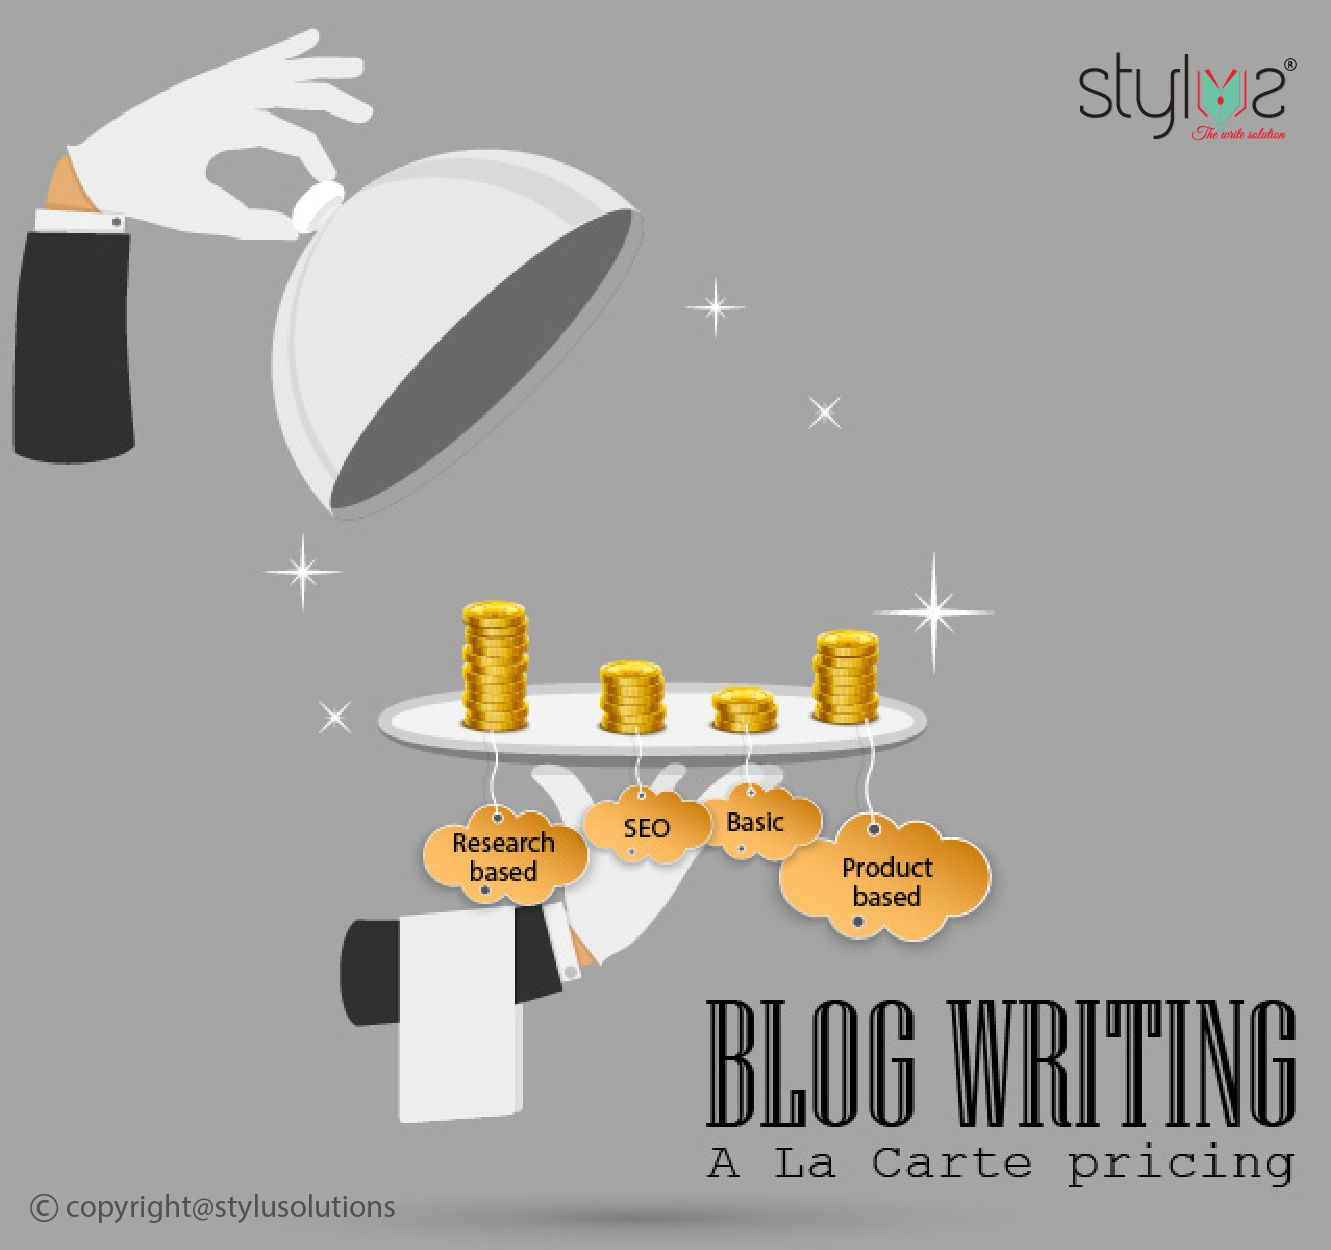 Academic writing company in india